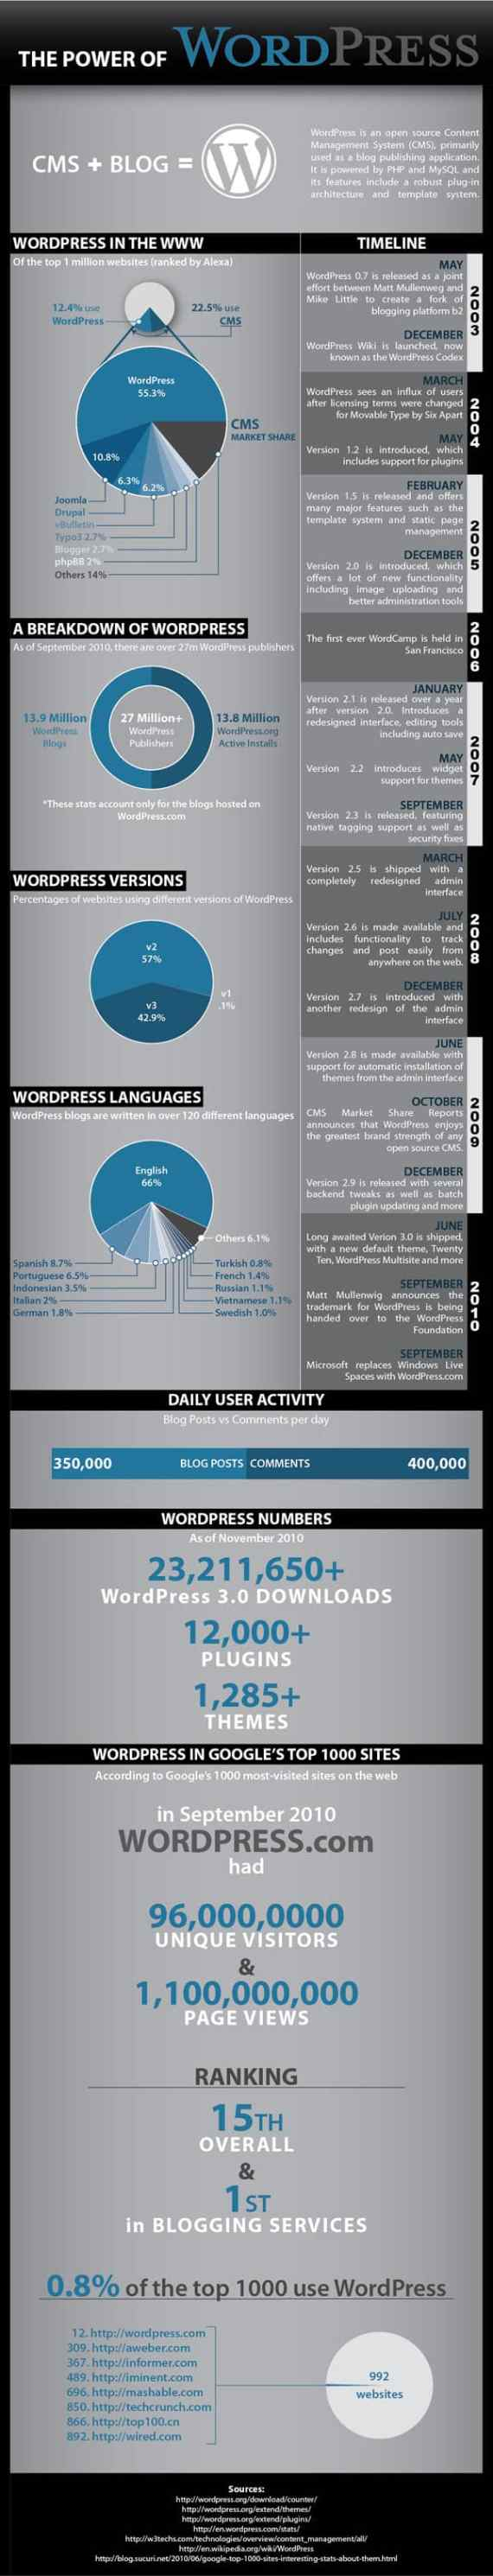 Infographic – The Power of WordPress